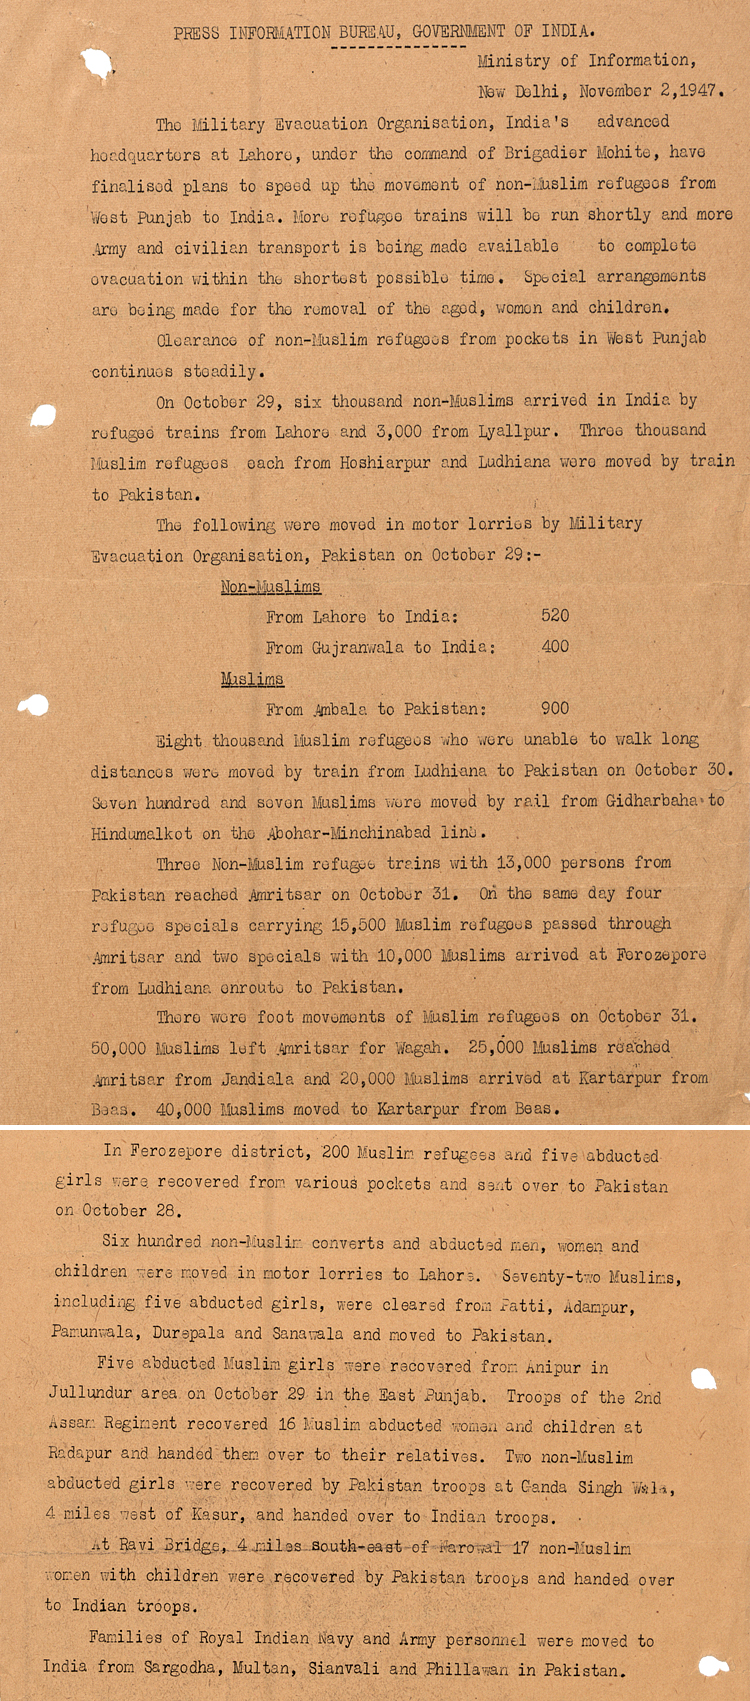 Official report by India's Ministry of Information on population movements, 2nd November 1947 (DO 133/60)